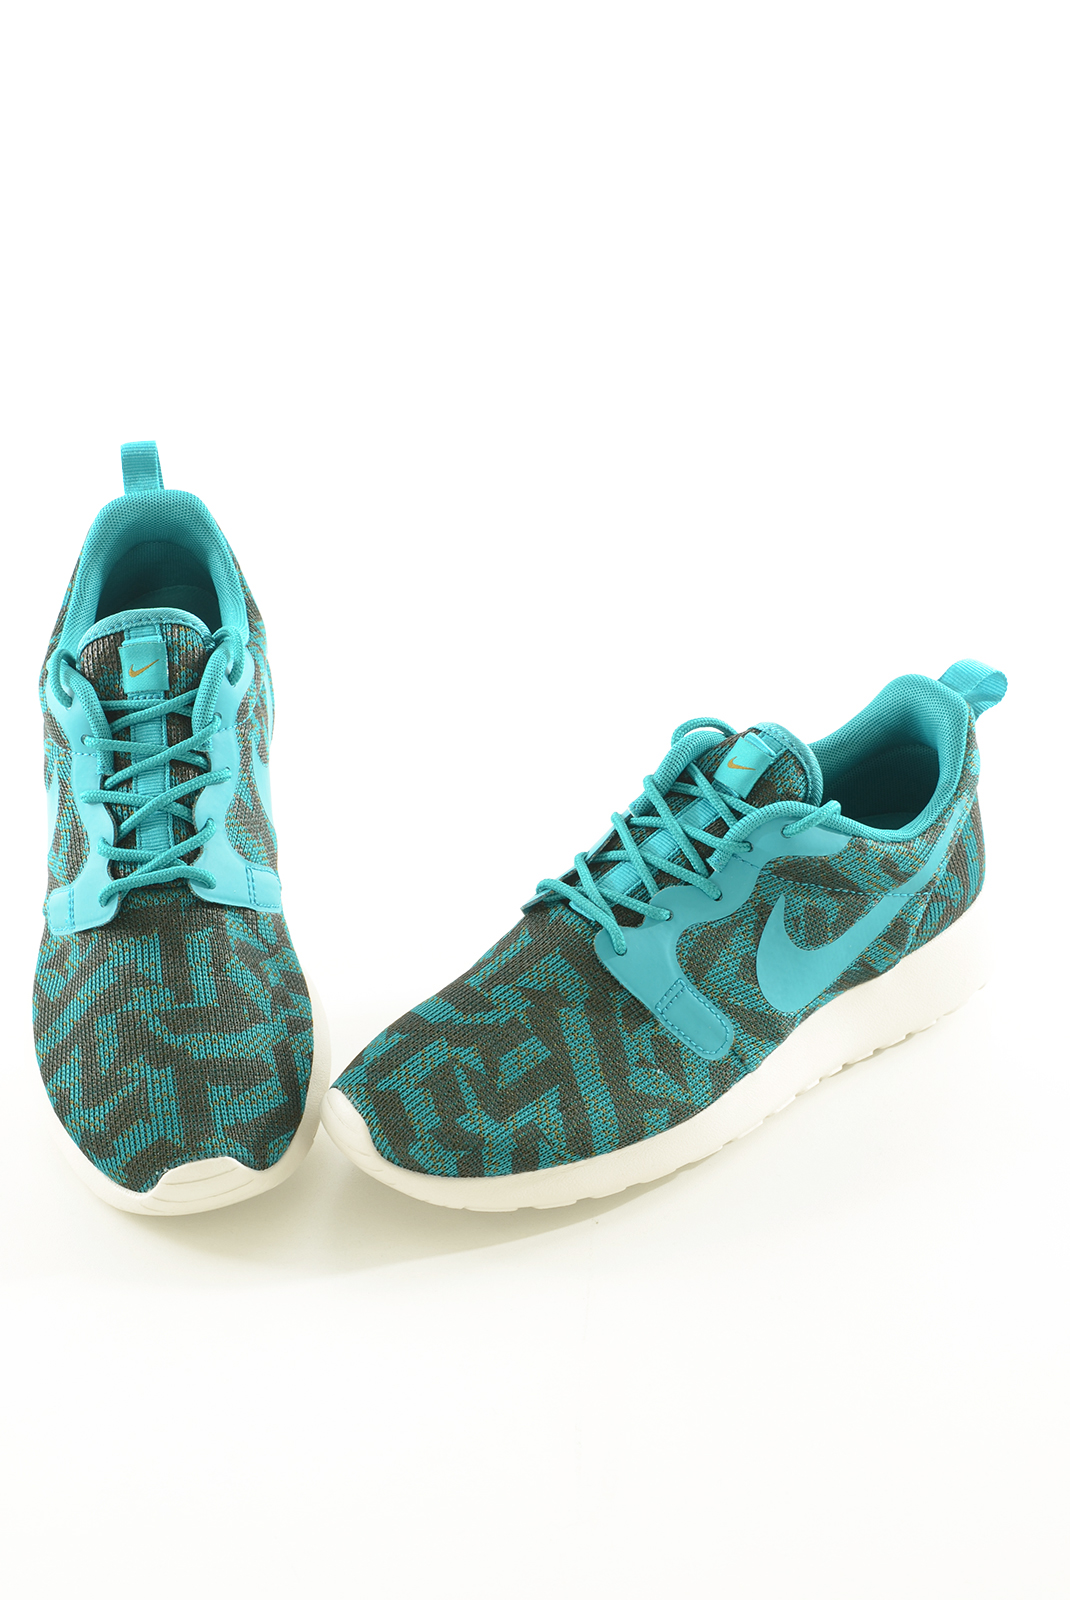 Chaussures  Nike 705217 ROSHE ONE 301 VERT MILICE